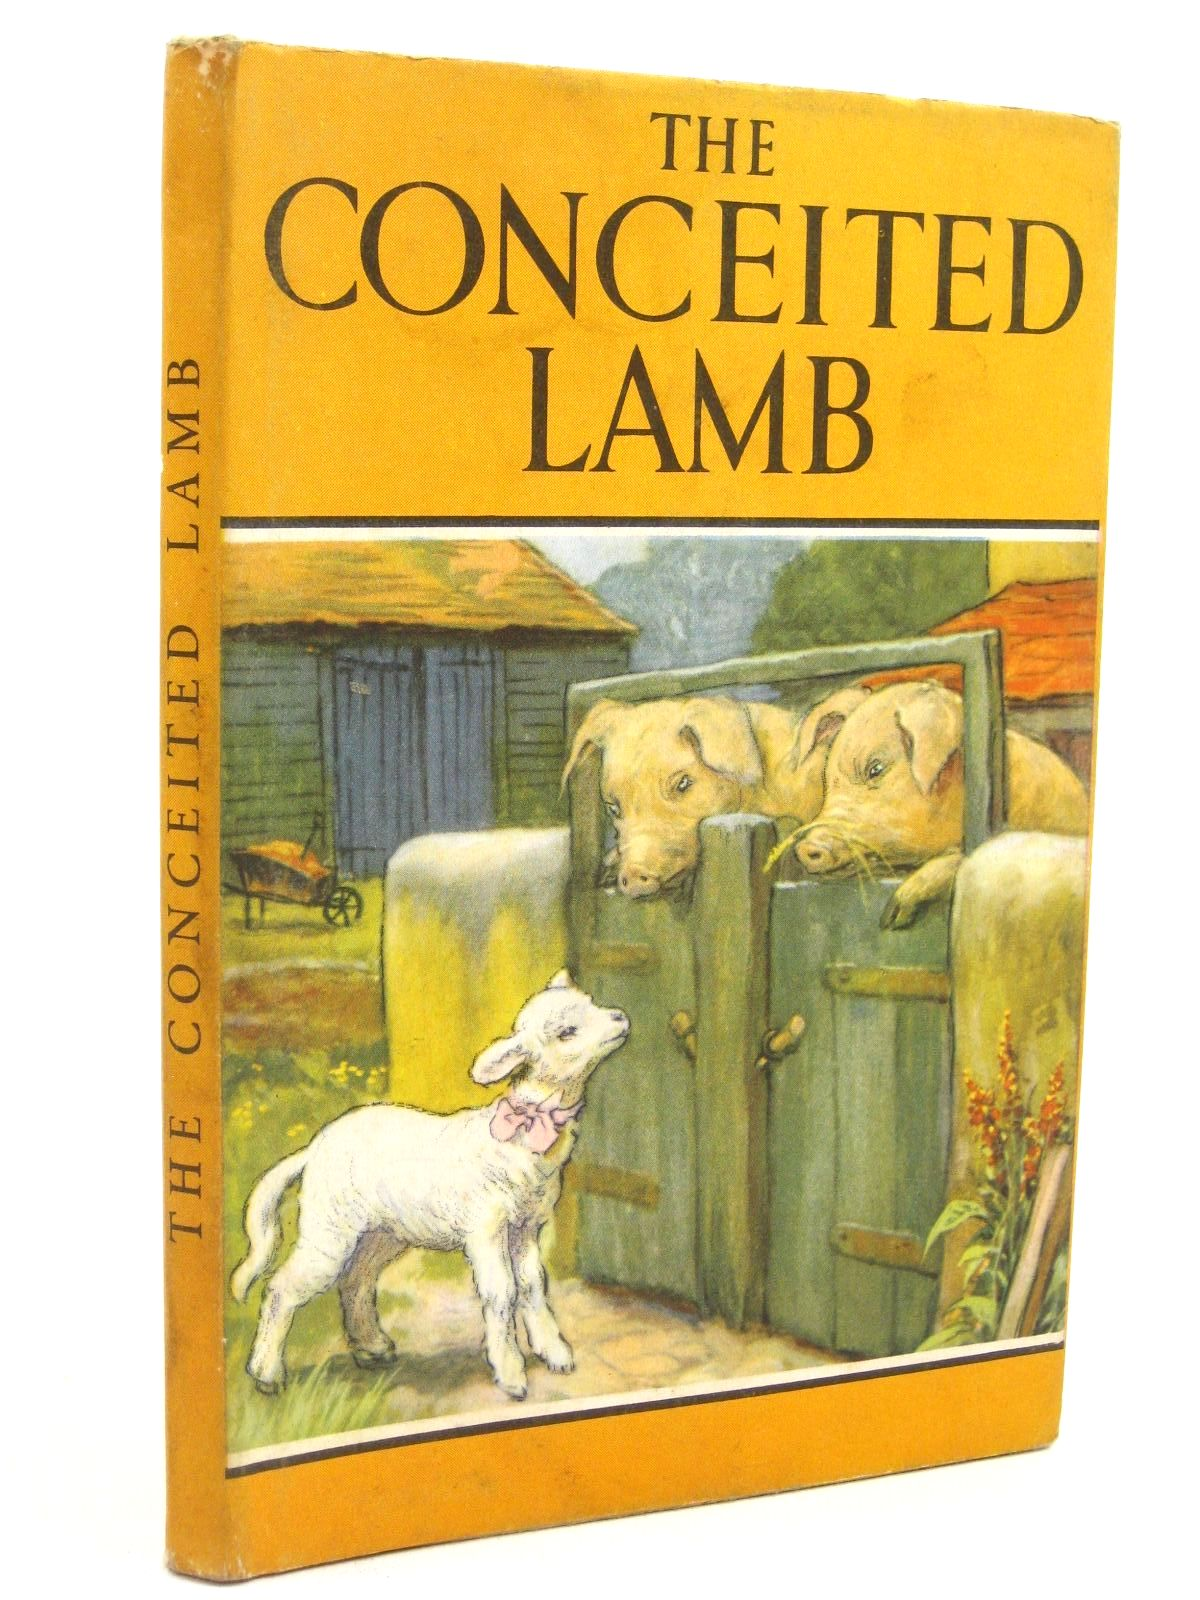 Photo of THE CONCEITED LAMB written by Barr, Noel illustrated by Hickling, P.B. published by Wills & Hepworth Ltd. (STOCK CODE: 1316800)  for sale by Stella & Rose's Books